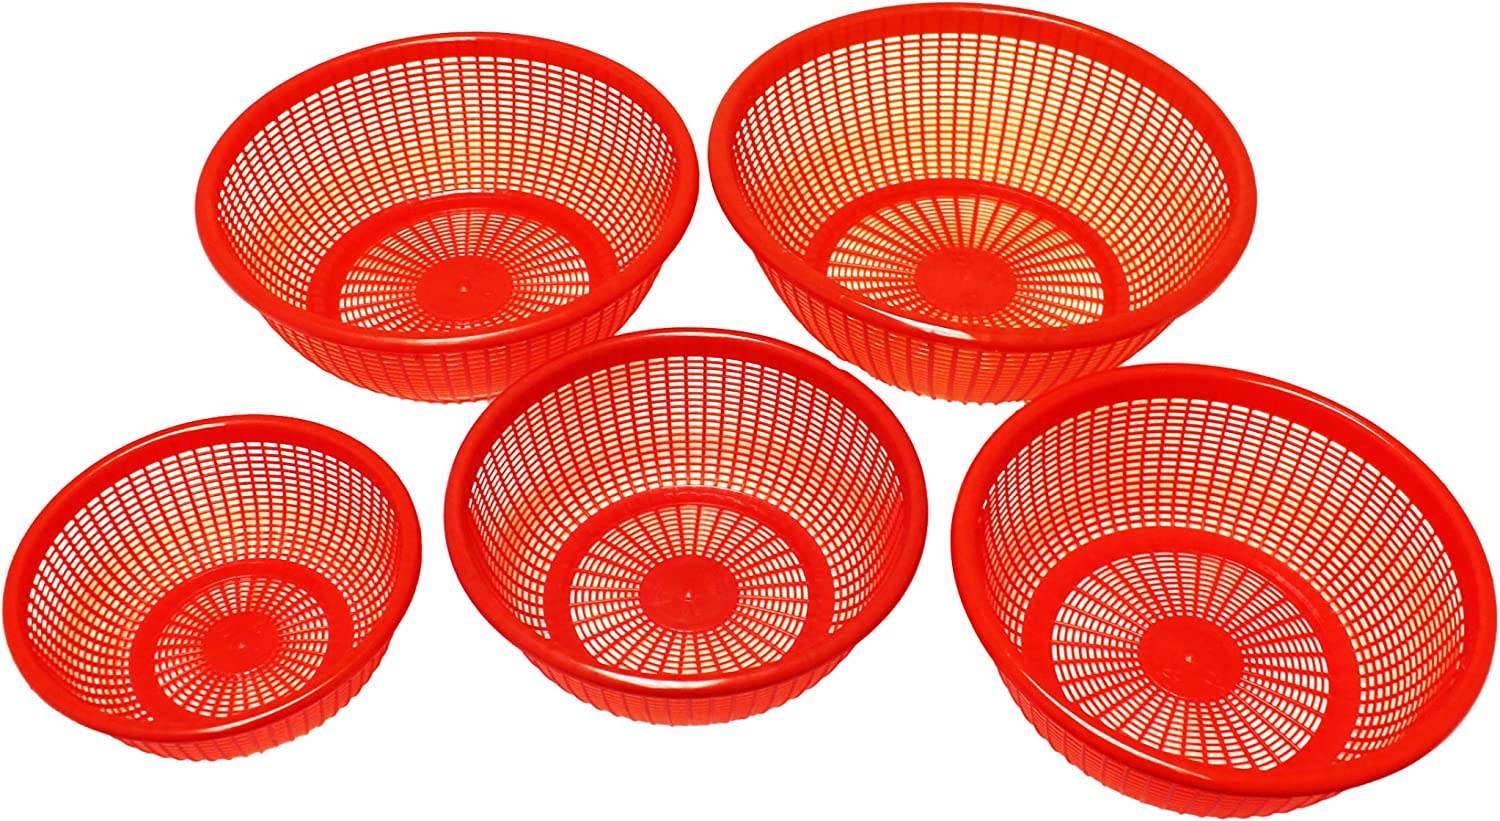 Excellante 5 Piece Plastic Perforated Vegetable and Wash Basket Set, Red